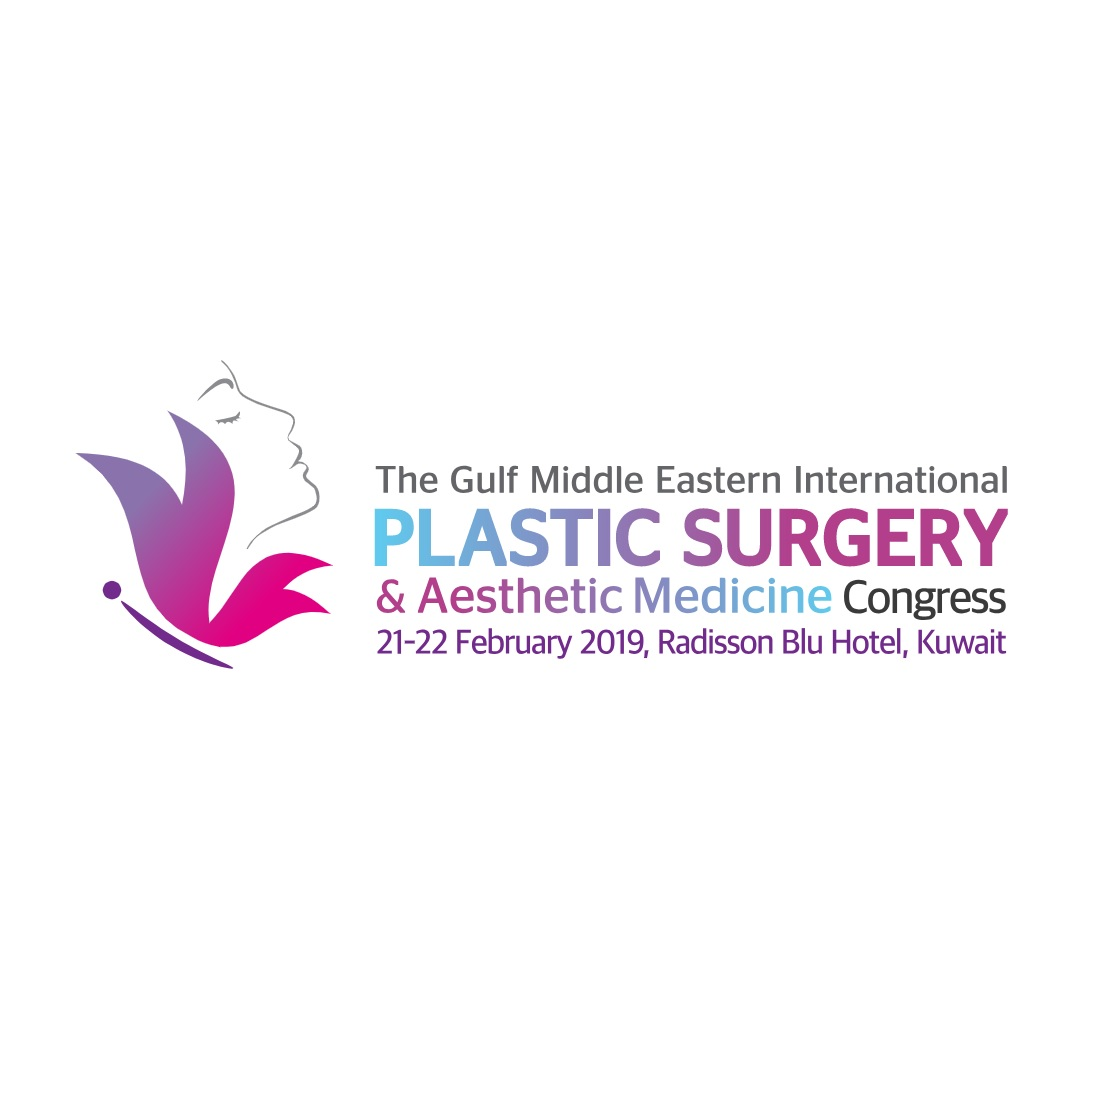 The Gulf Middle Eastern International Plastic Surgery & Aesthetic Medicine Congress – 2019